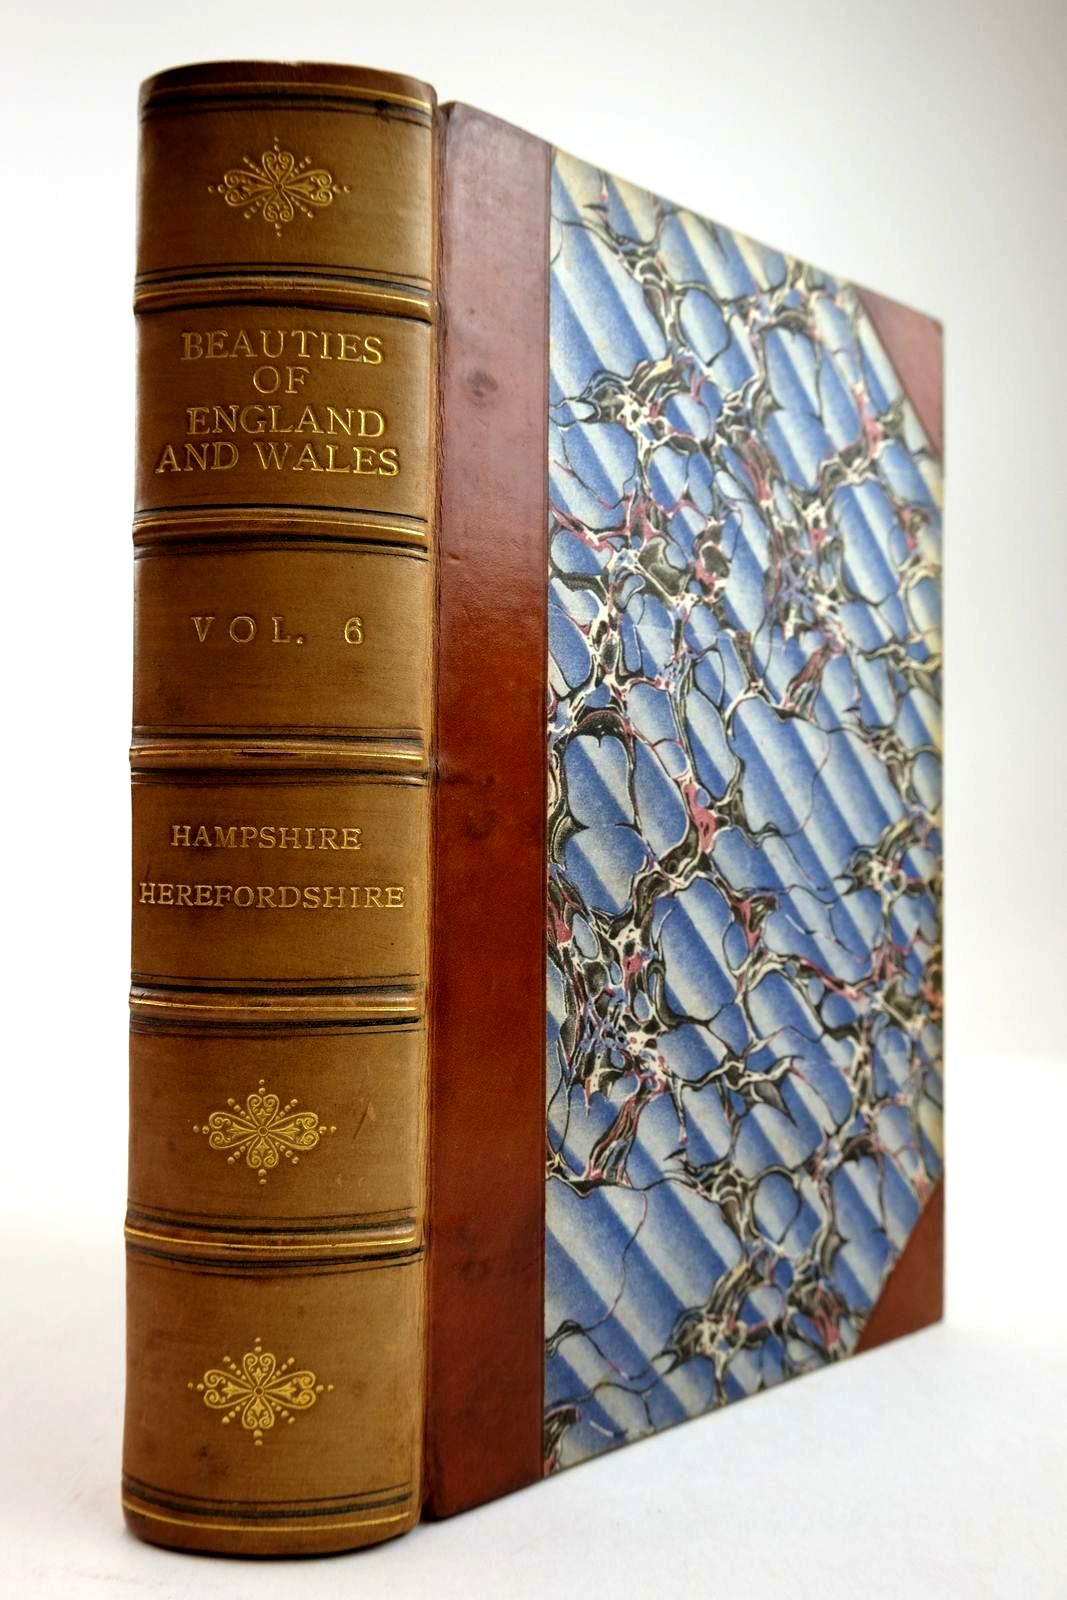 Photo of THE BEAUTIES OF ENGLAND AND WALES VOL VI- Stock Number: 2134256